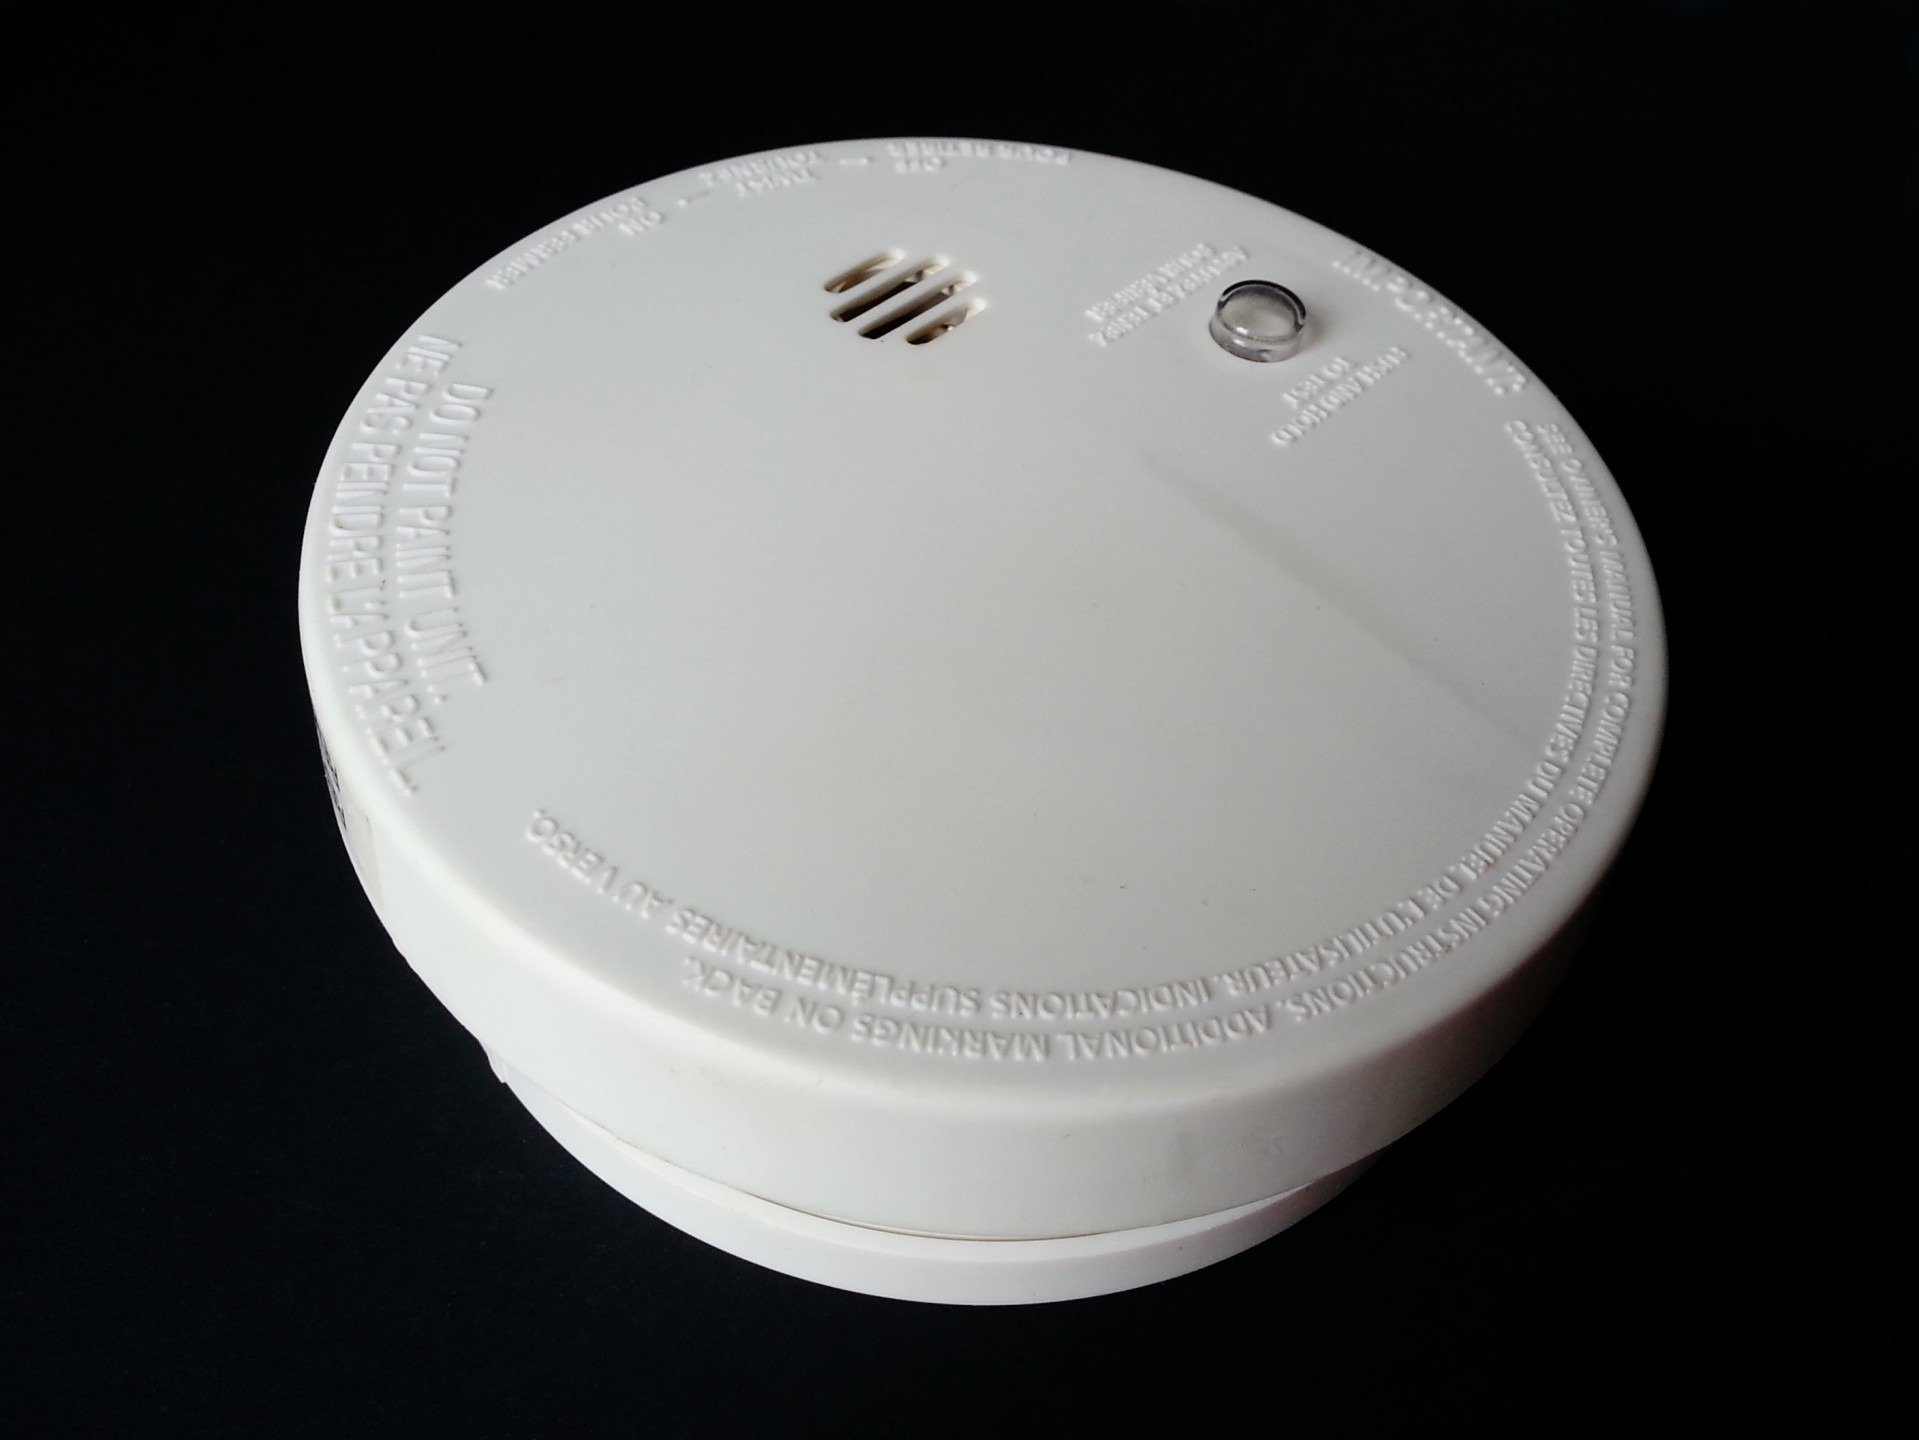 A Guide To Fire Alarm System Types